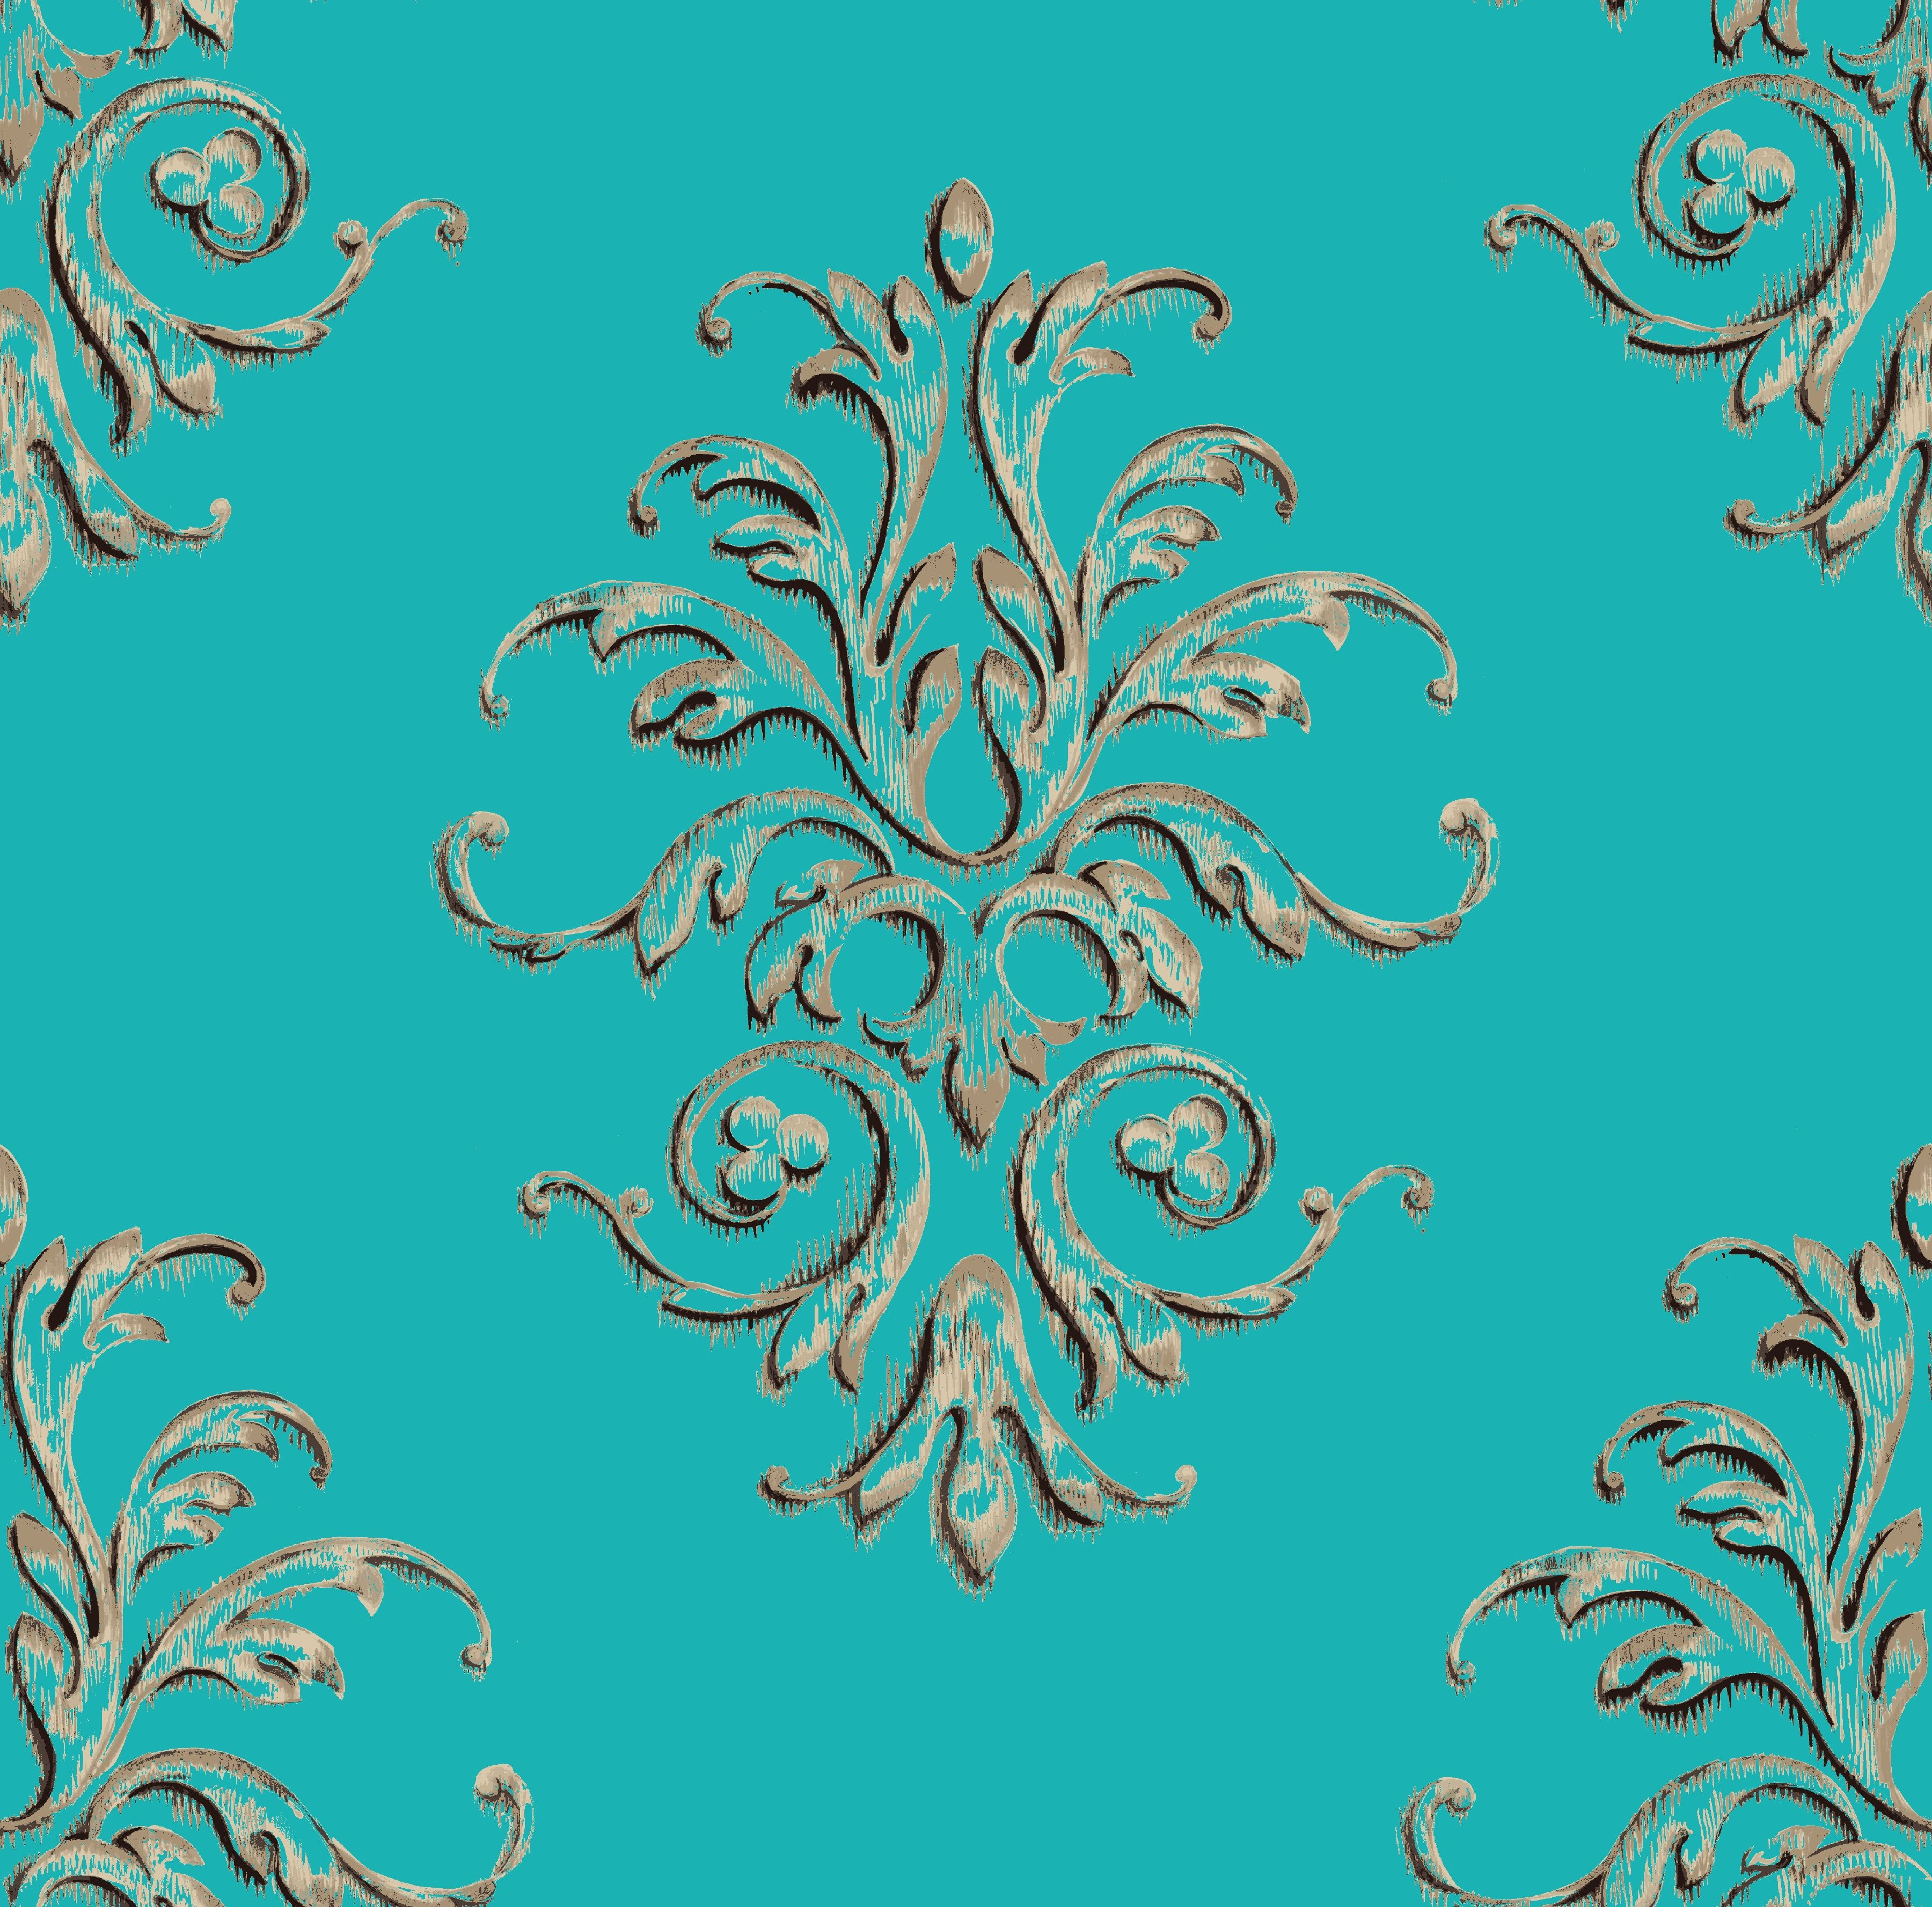 Teal baroque motif color teal cream size 24x 24 material imagine tile manufactures custom ceramic tile tile murals and decorative tile for creating themed environments in both commercial and residential spaces dailygadgetfo Image collections